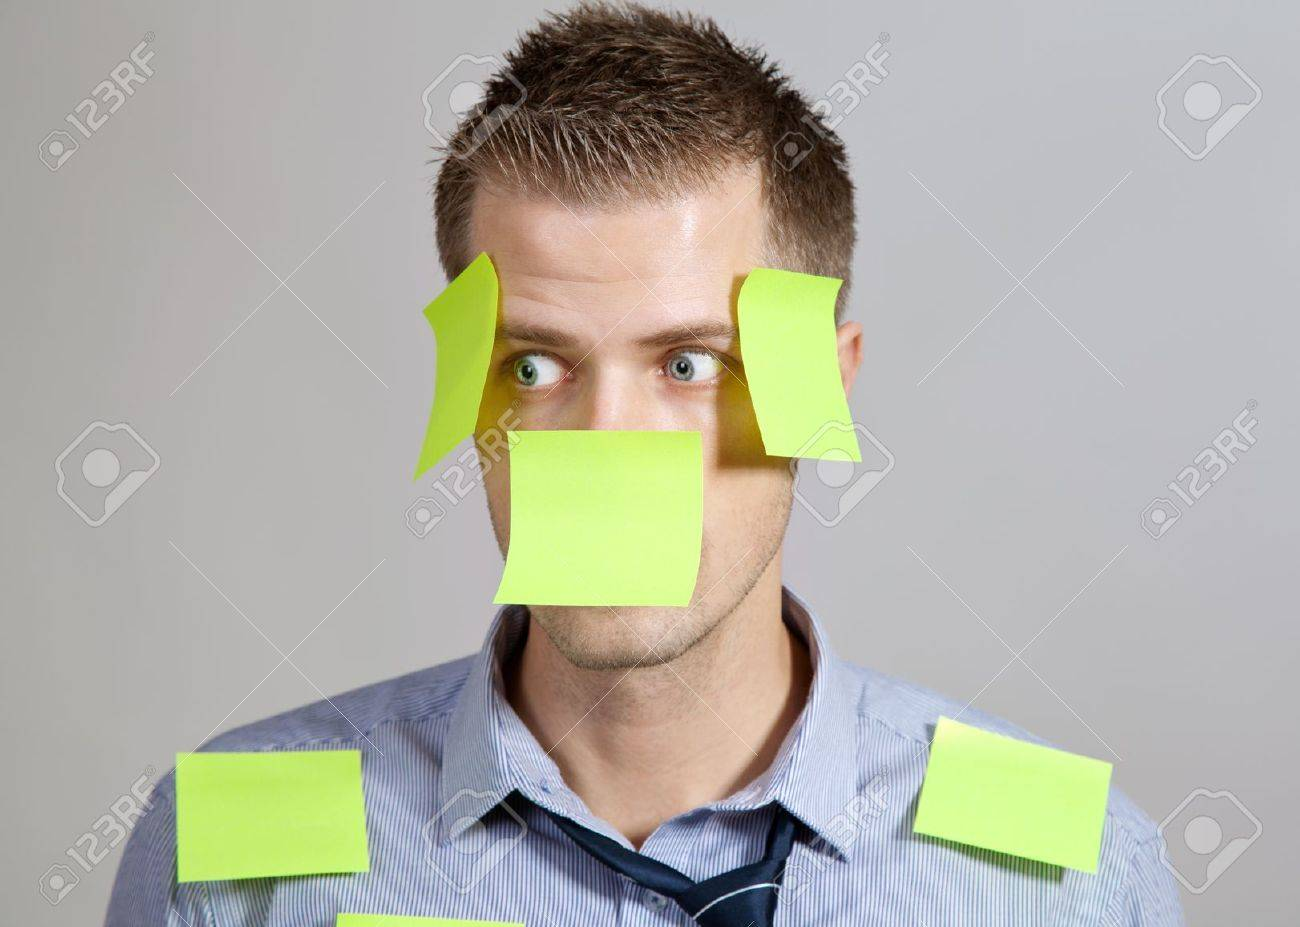 Confused businessman with post it notes on face and clothes Stock Photo - 13131271